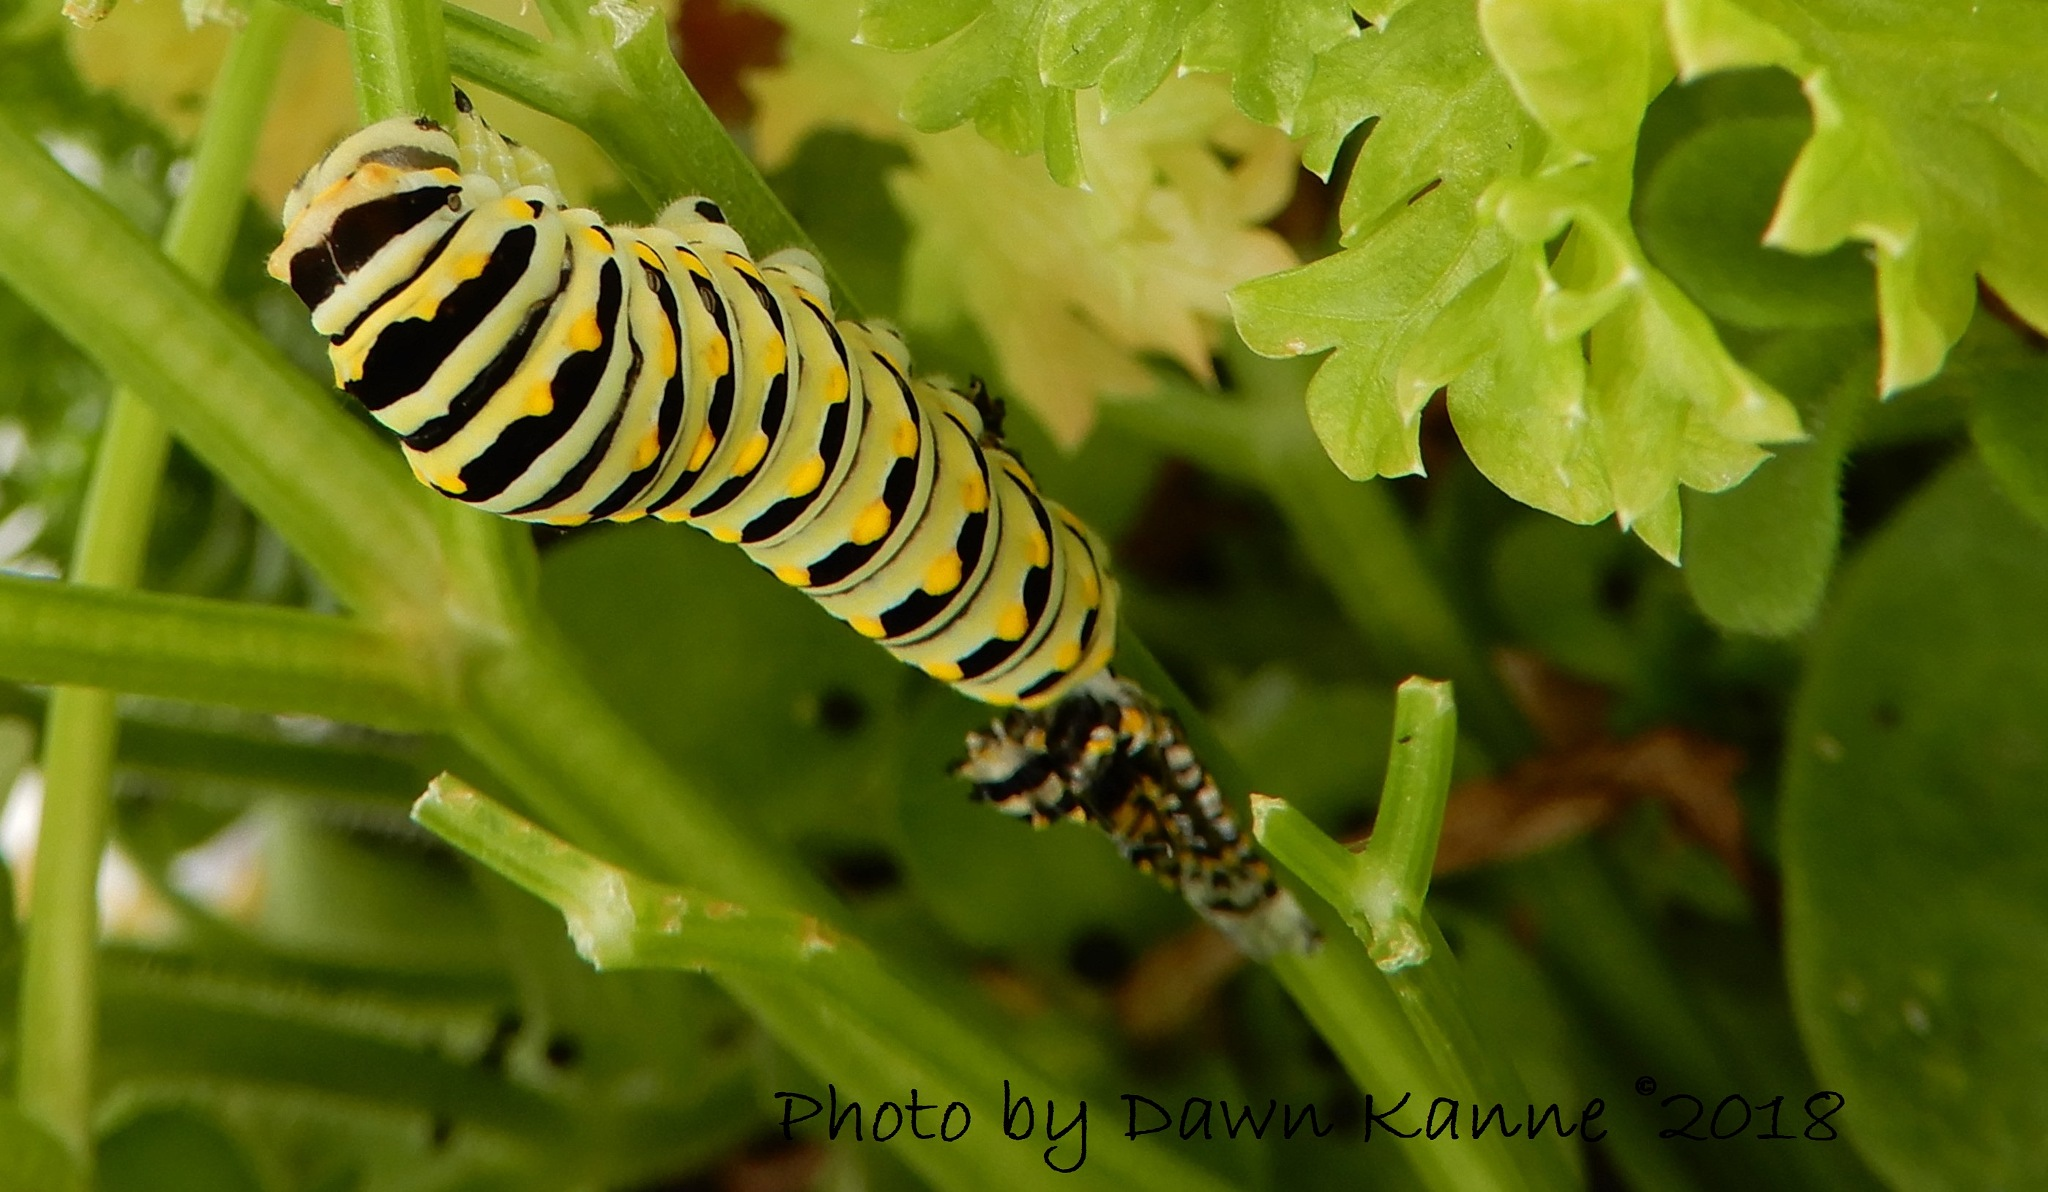 Molting completed for another stage of growth! by Dawn Kanne